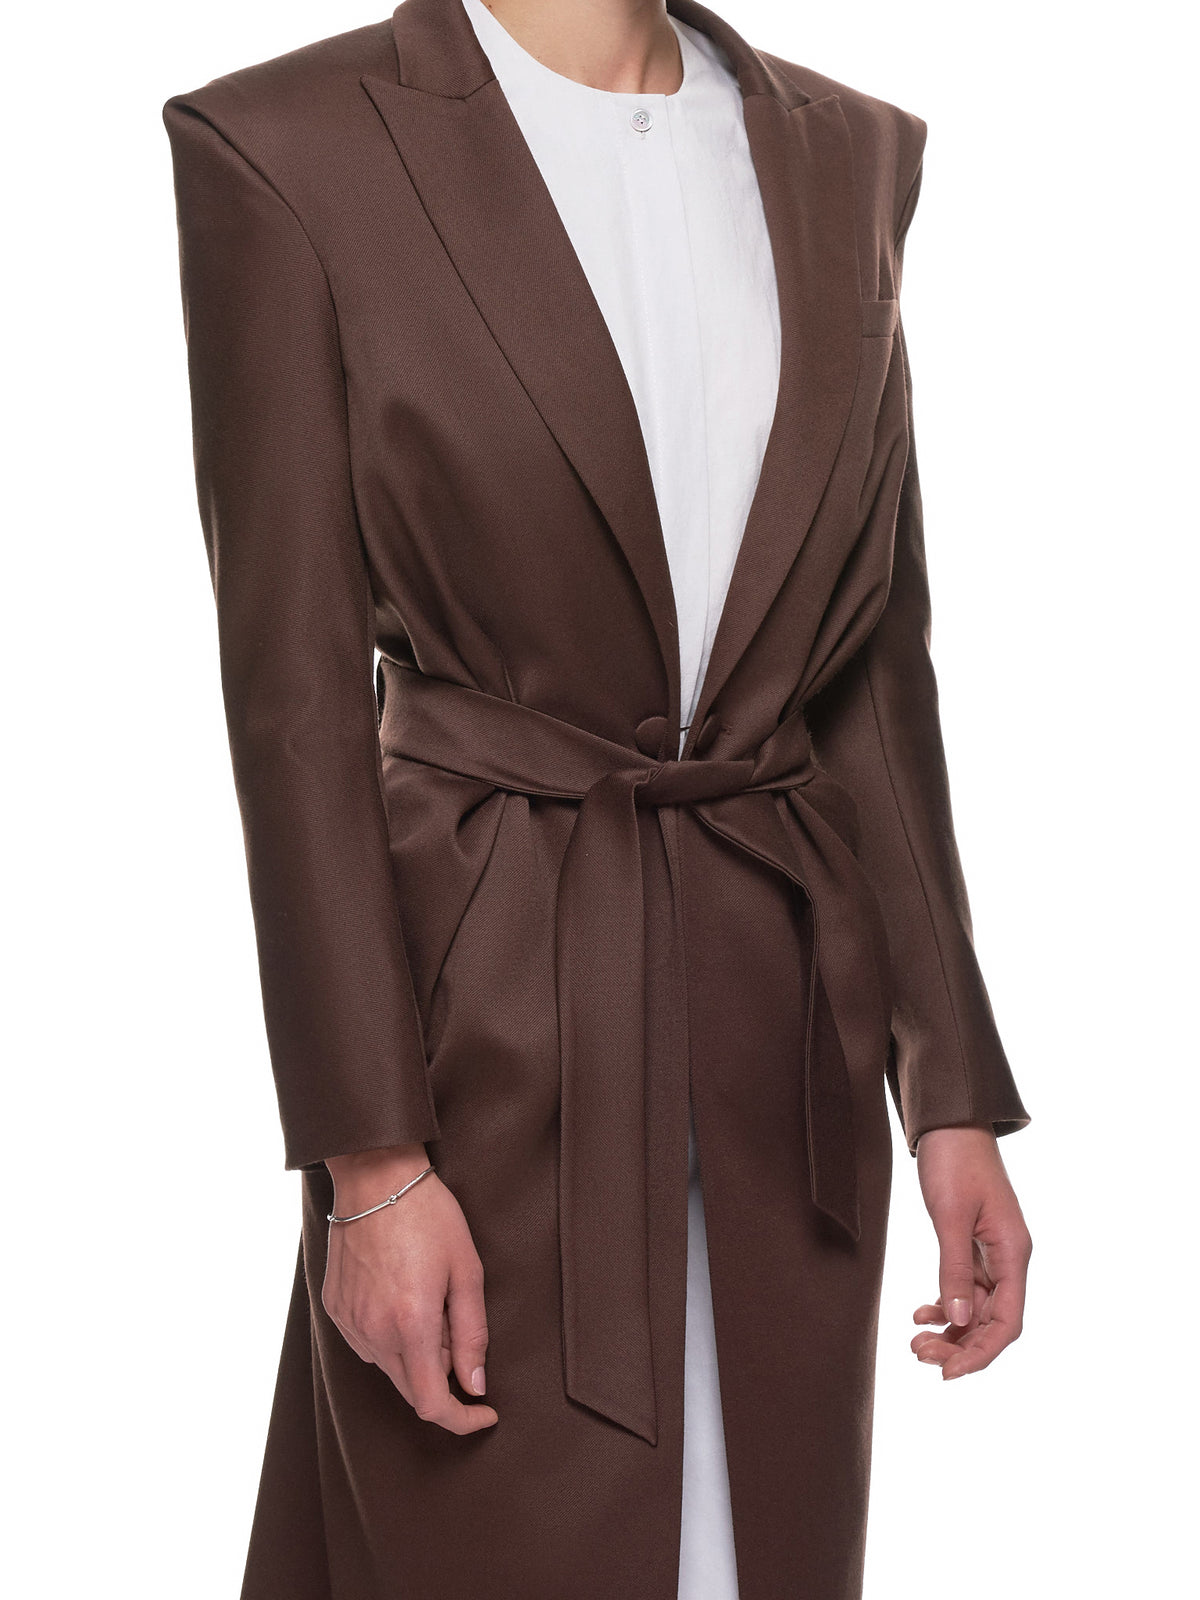 'Barocco Camisole Coat' (38-BAROCCO-BROWN)